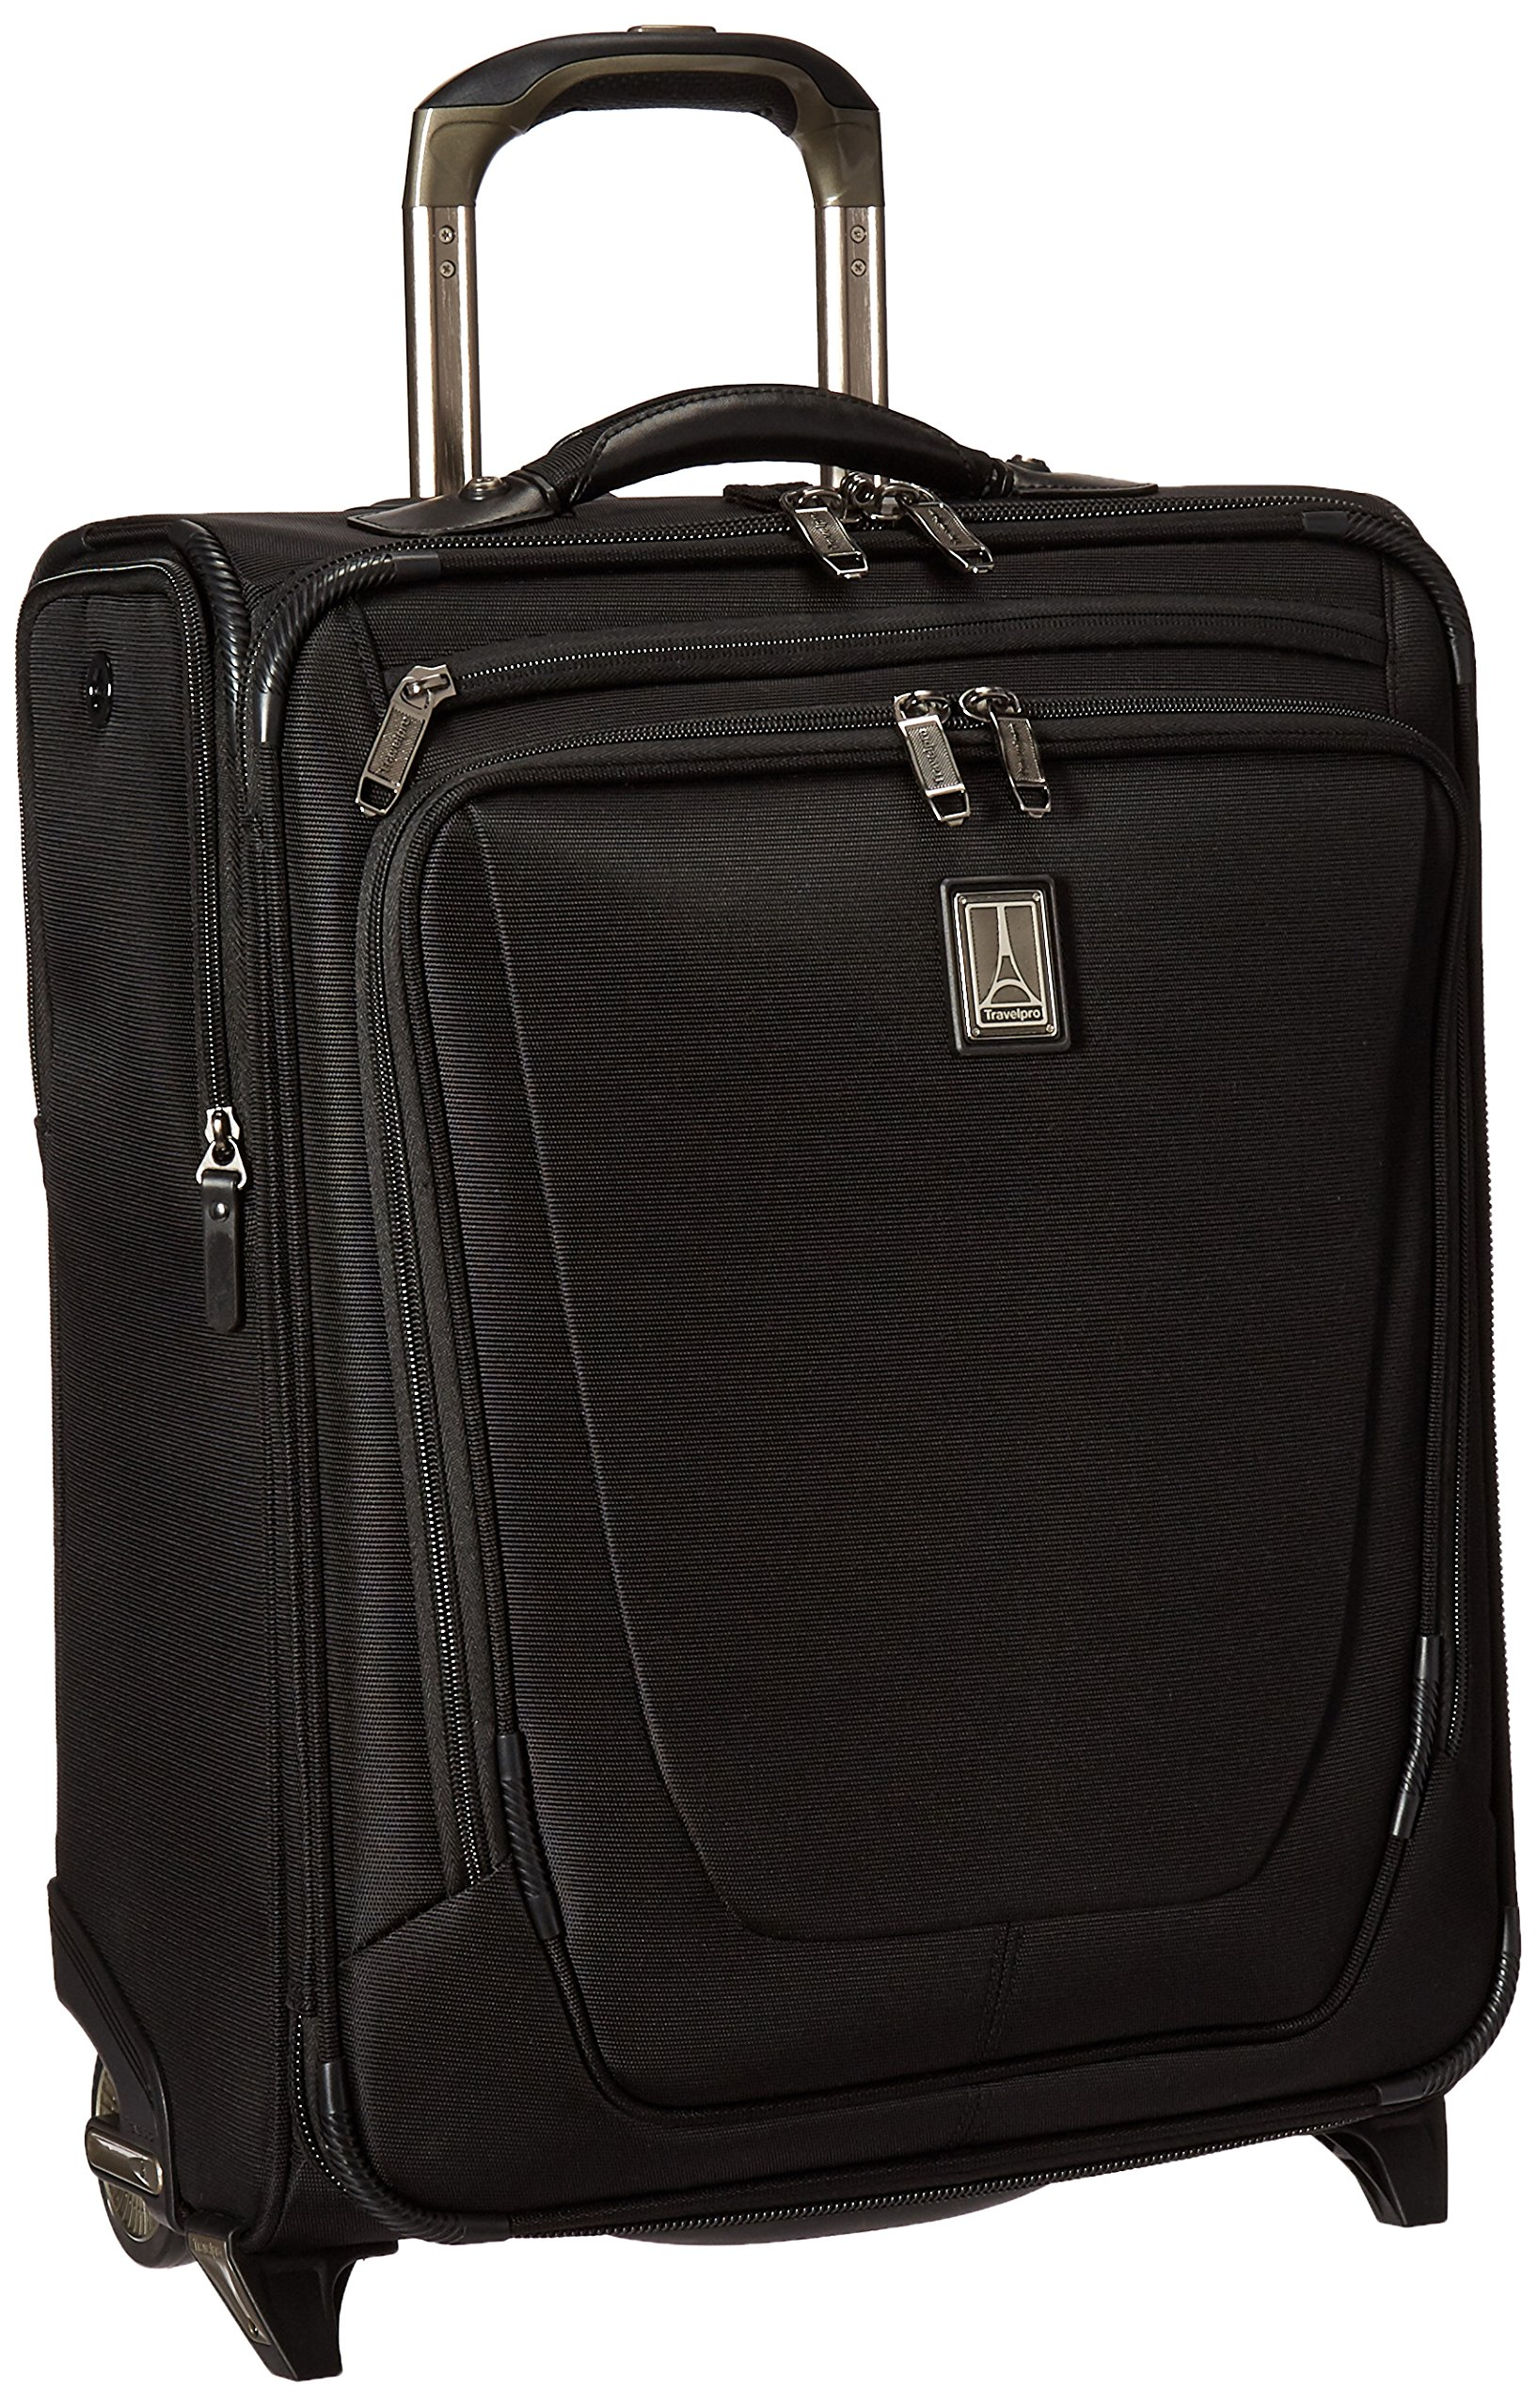 Travelpro Crew 11 20'' International Rollaboard Carry-on Suitcase, Black by Travelpro